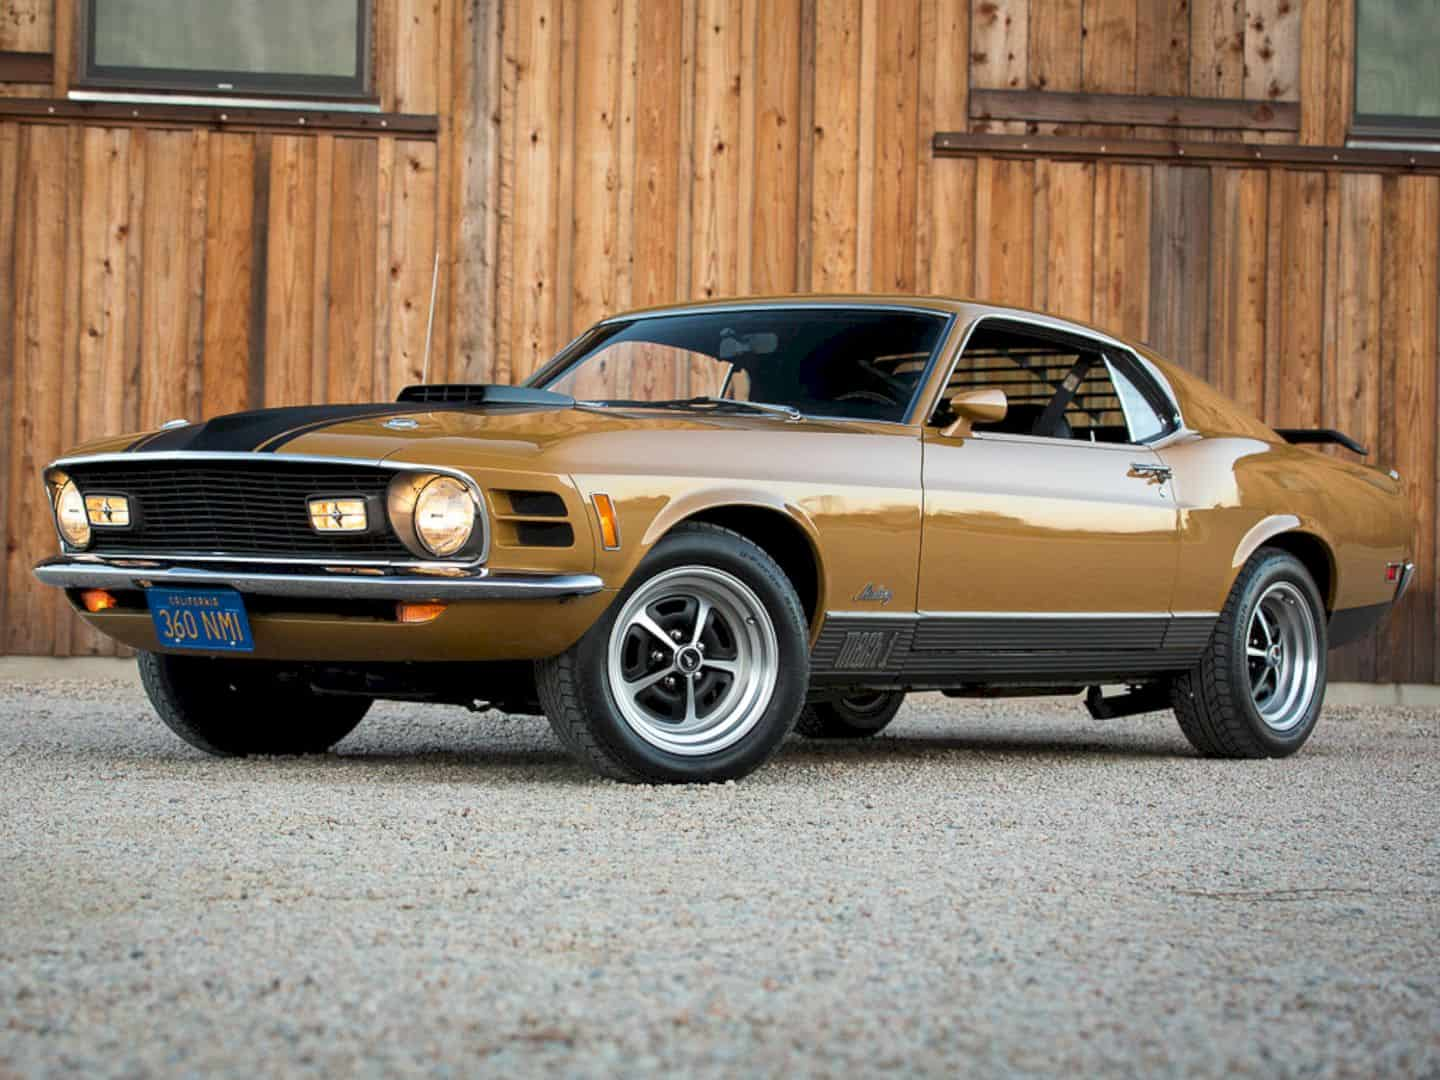 1970 Ford Mustang Mach 1 By Corvette Mike 1